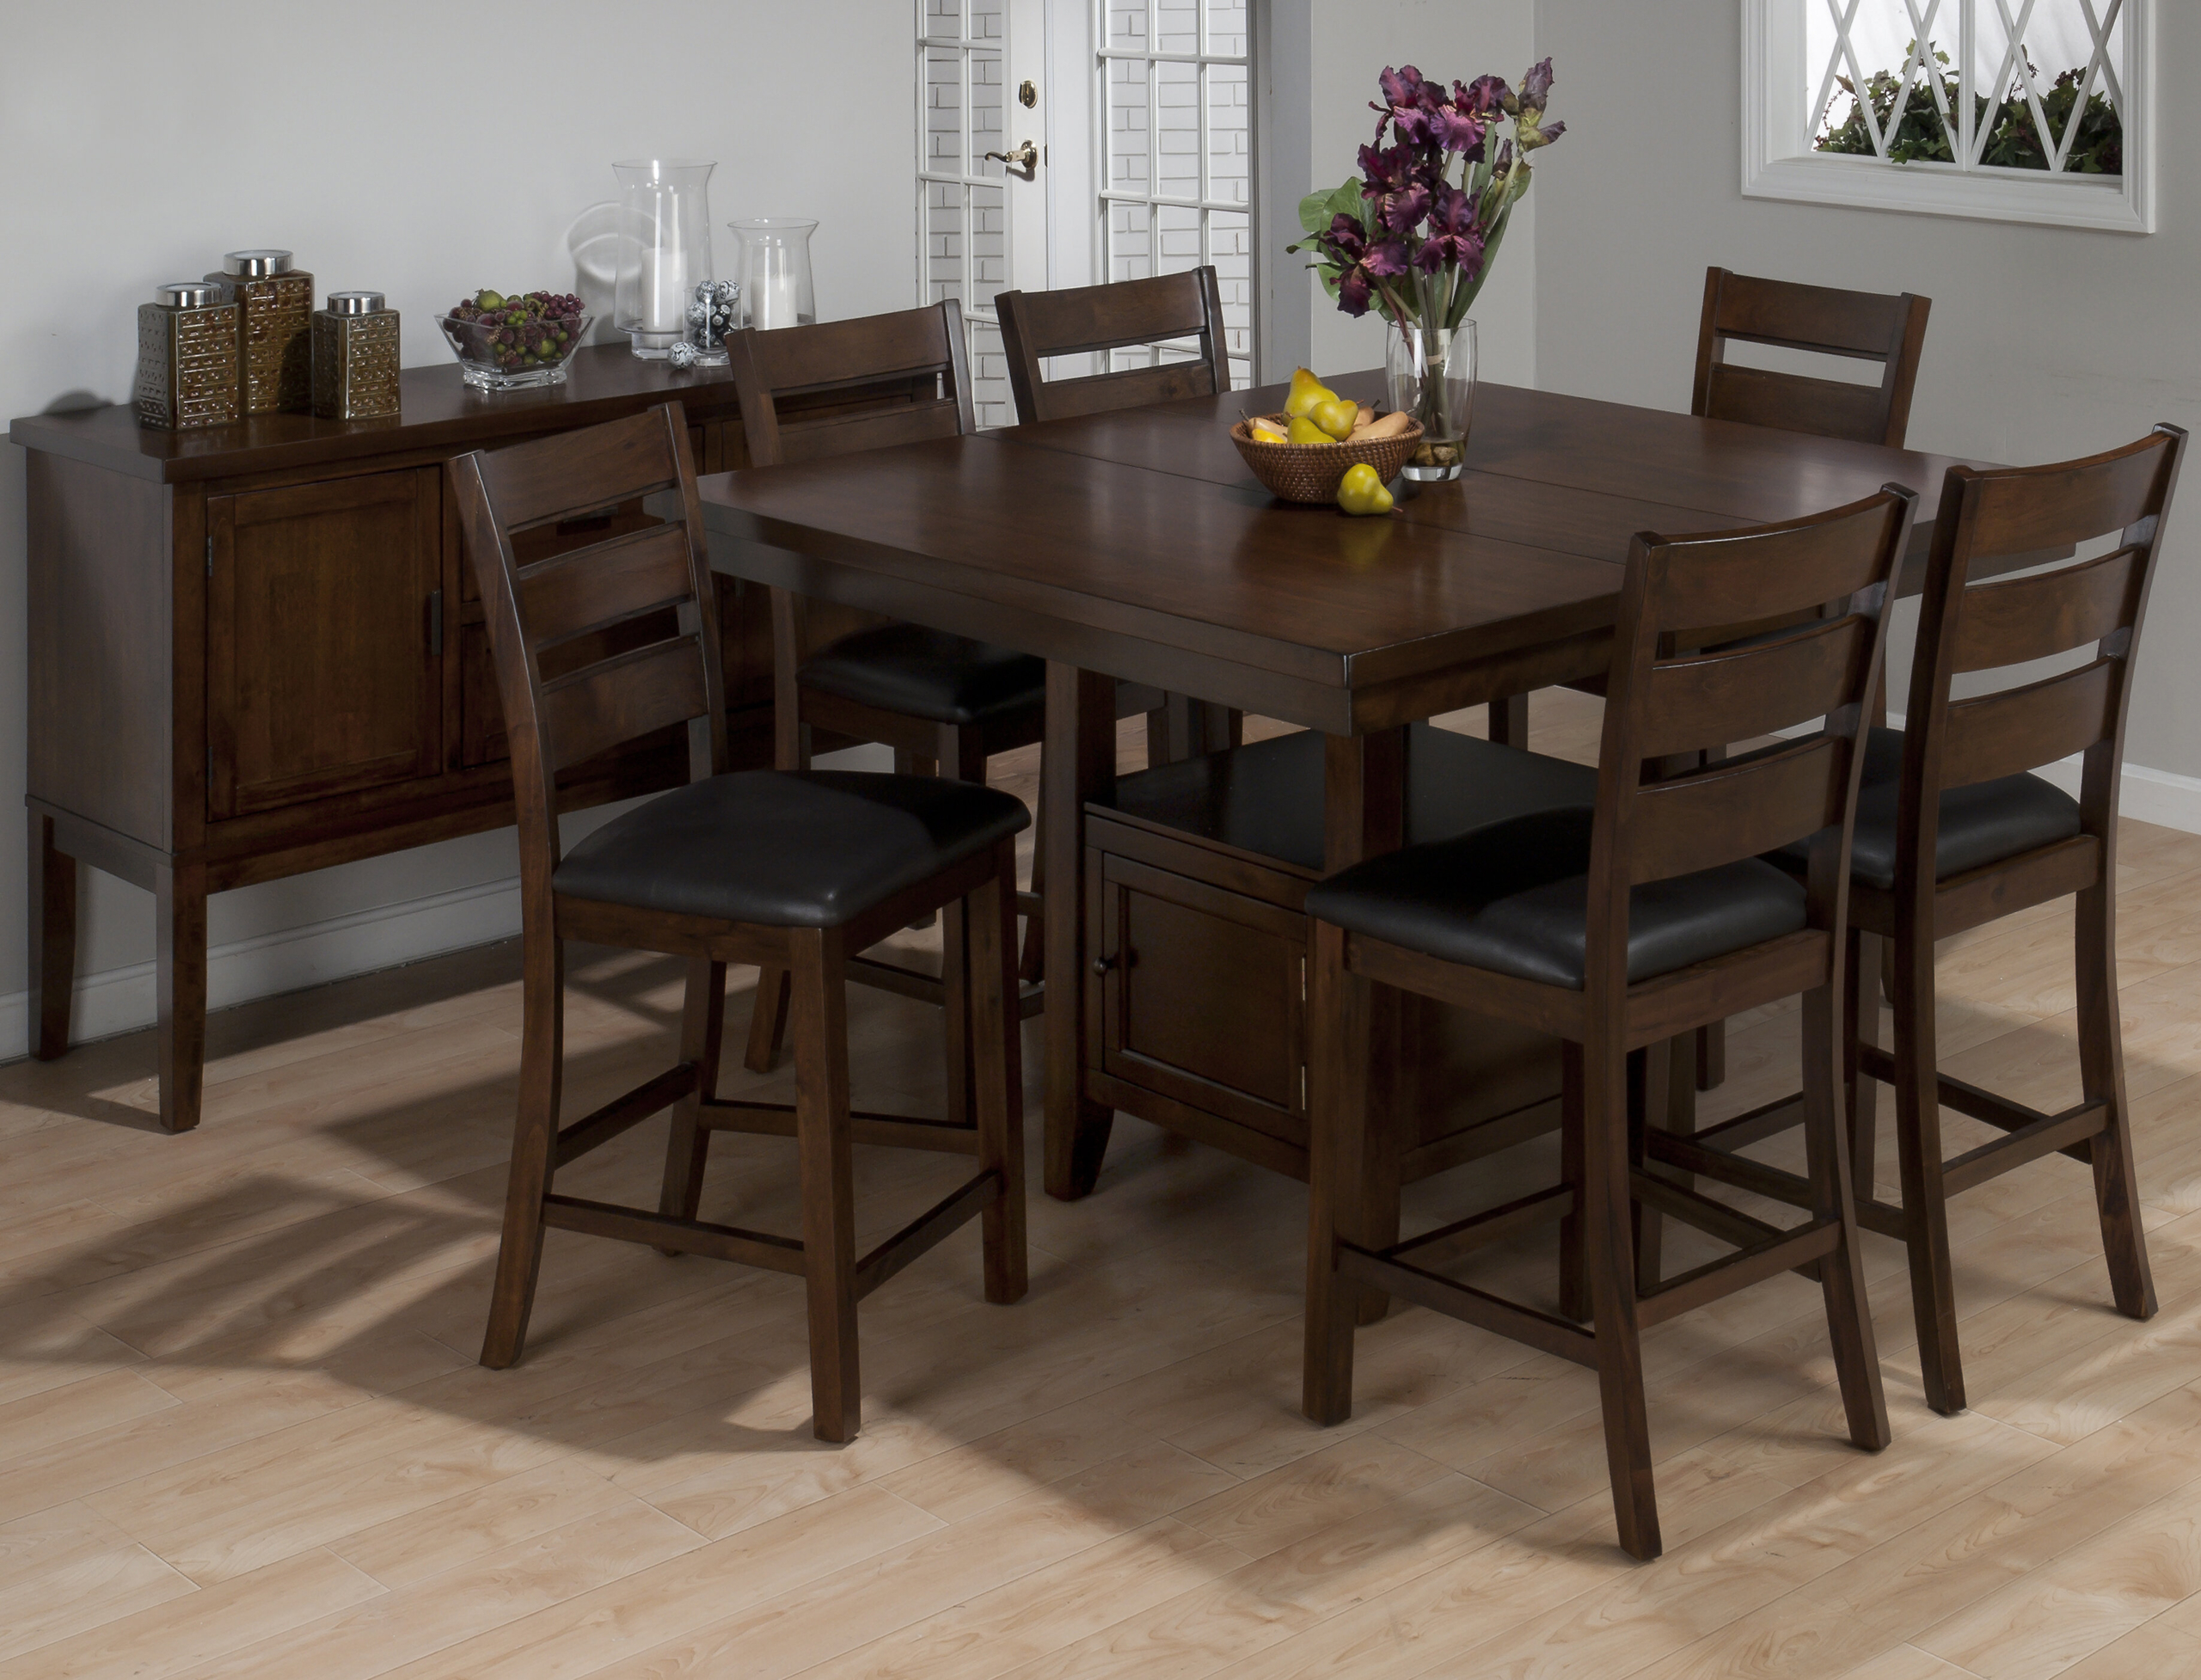 Square Dining Table For 6 You Ll Love, High Dining Room Tables